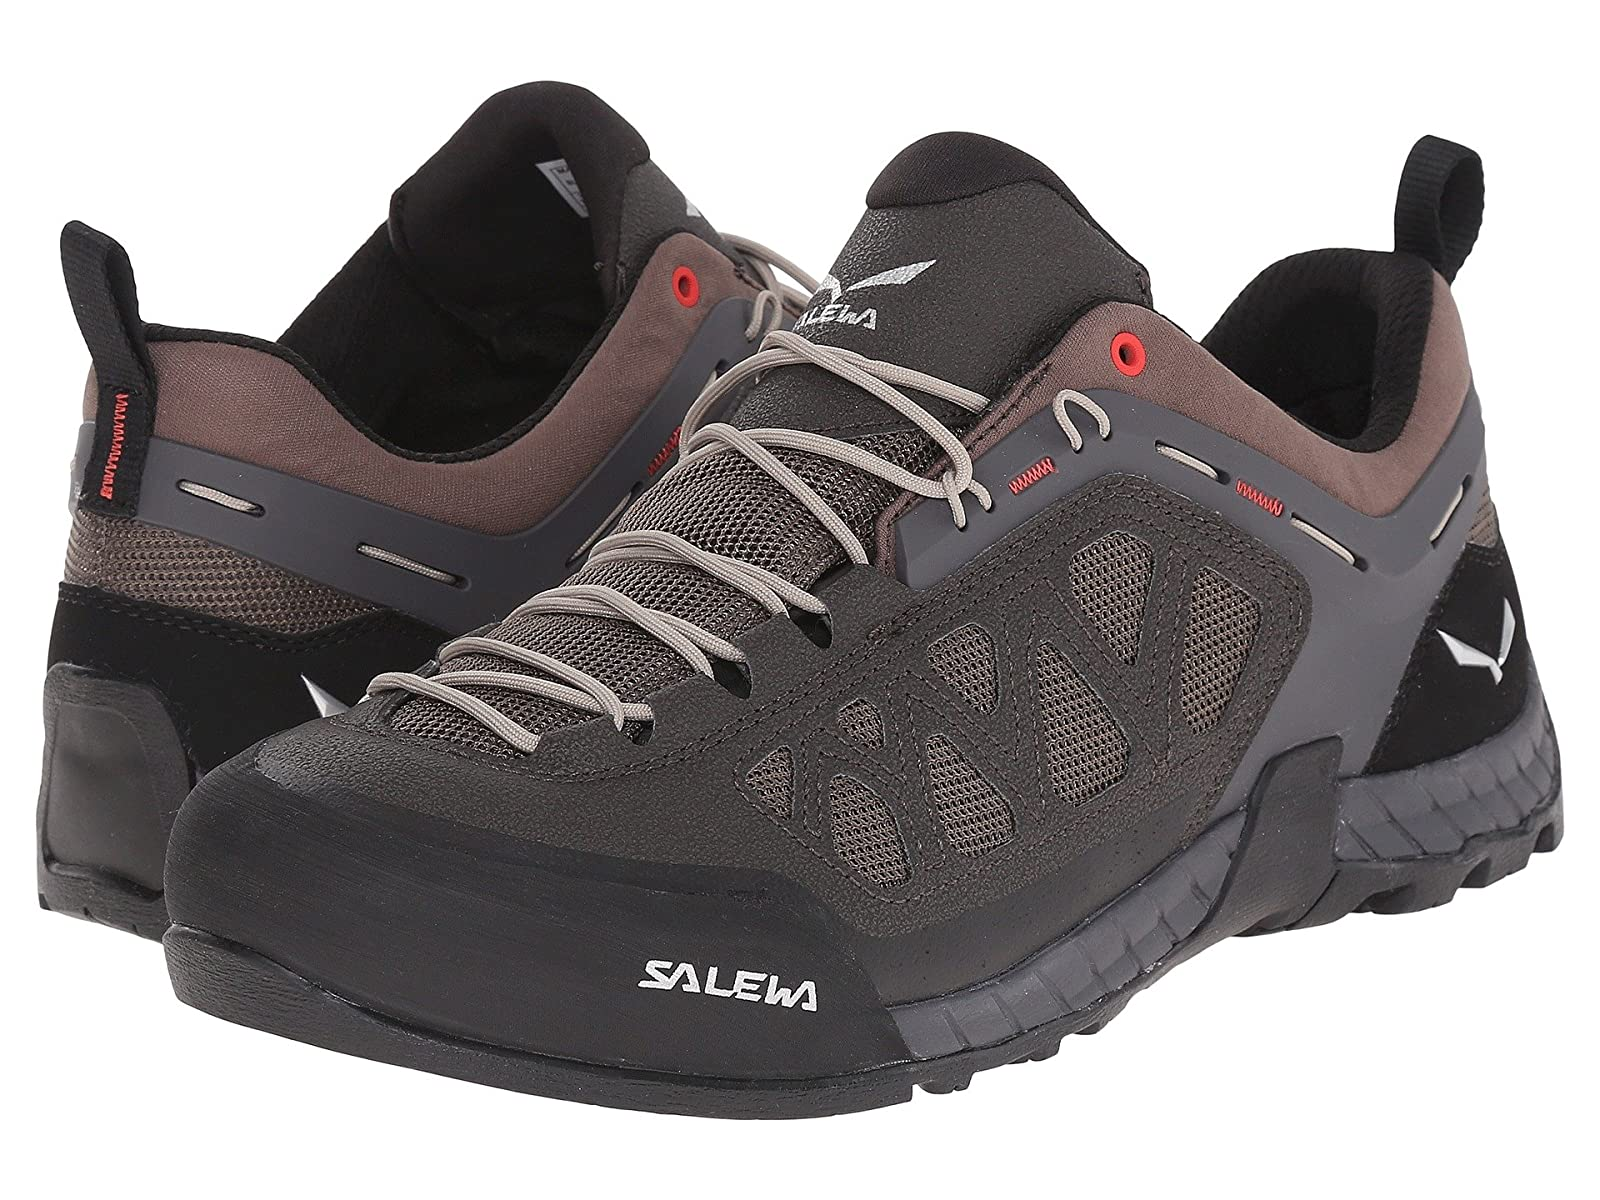 SALEWA Firetail 3Atmospheric grades have affordable shoes